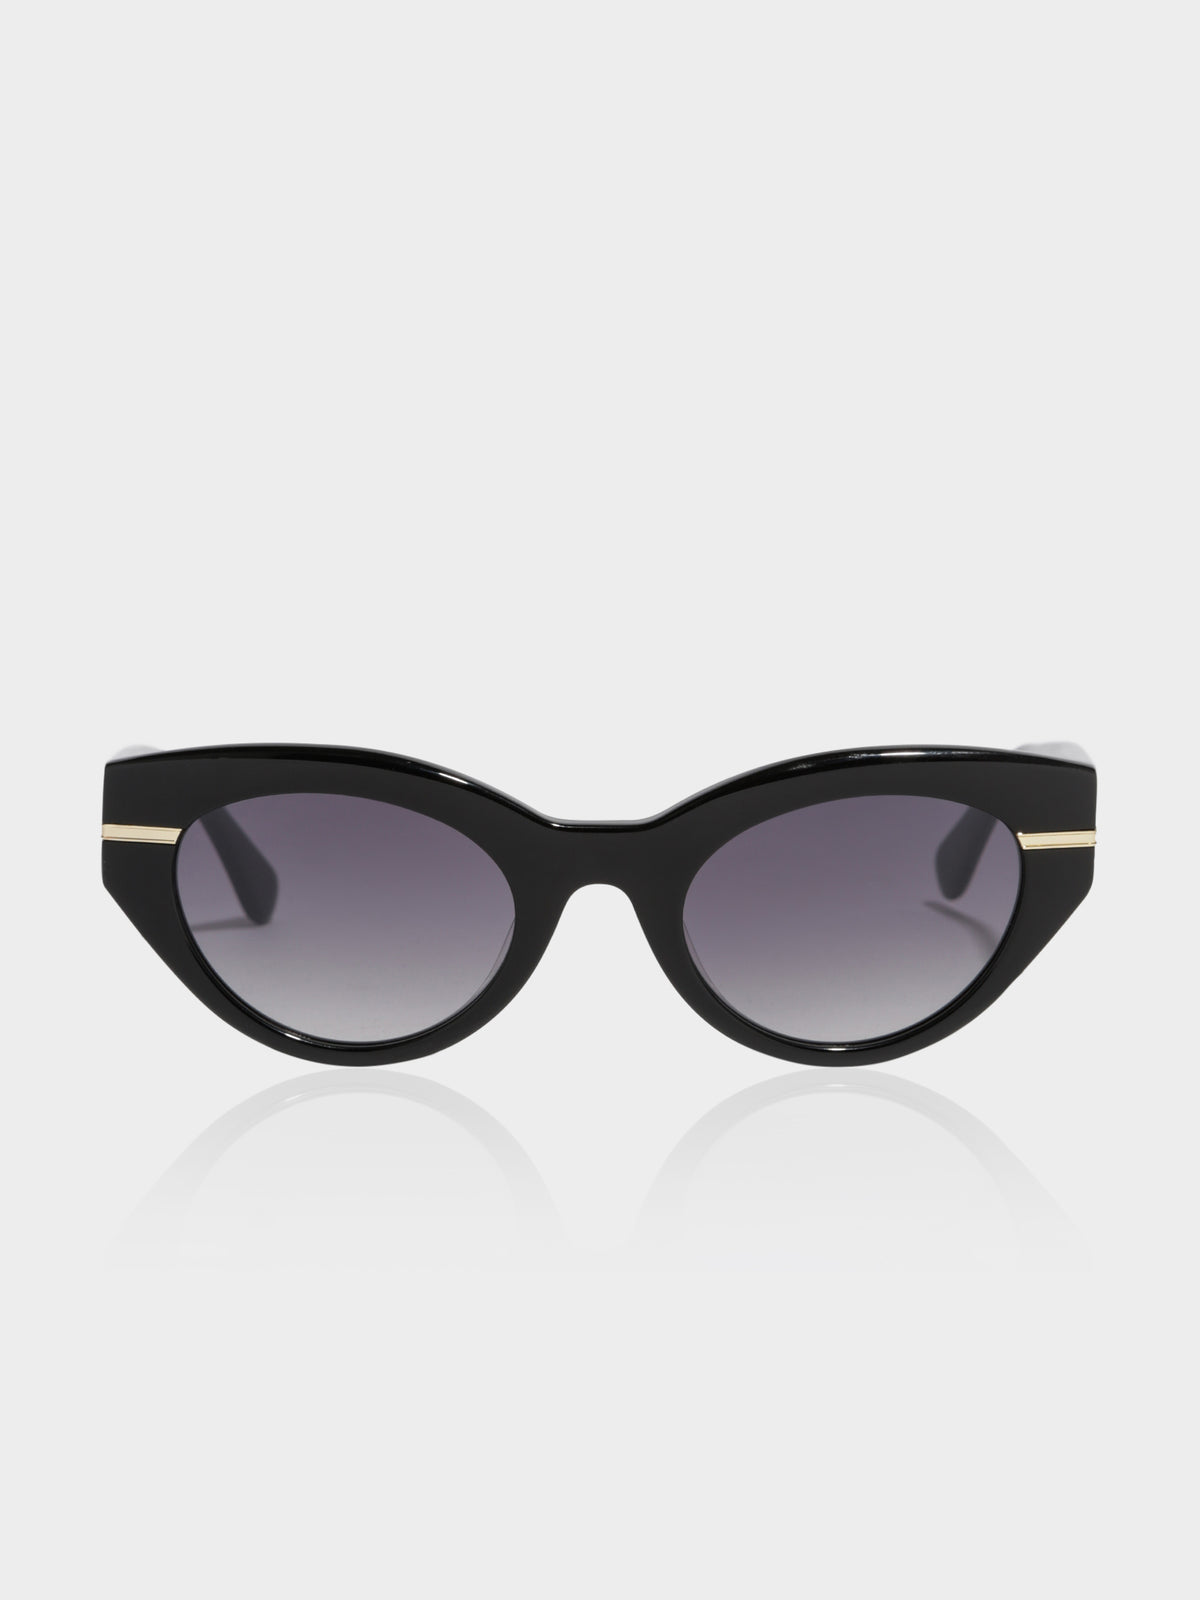 Womens Magnific Cateye Sunglasses in Black with Gradient Smoke Lens